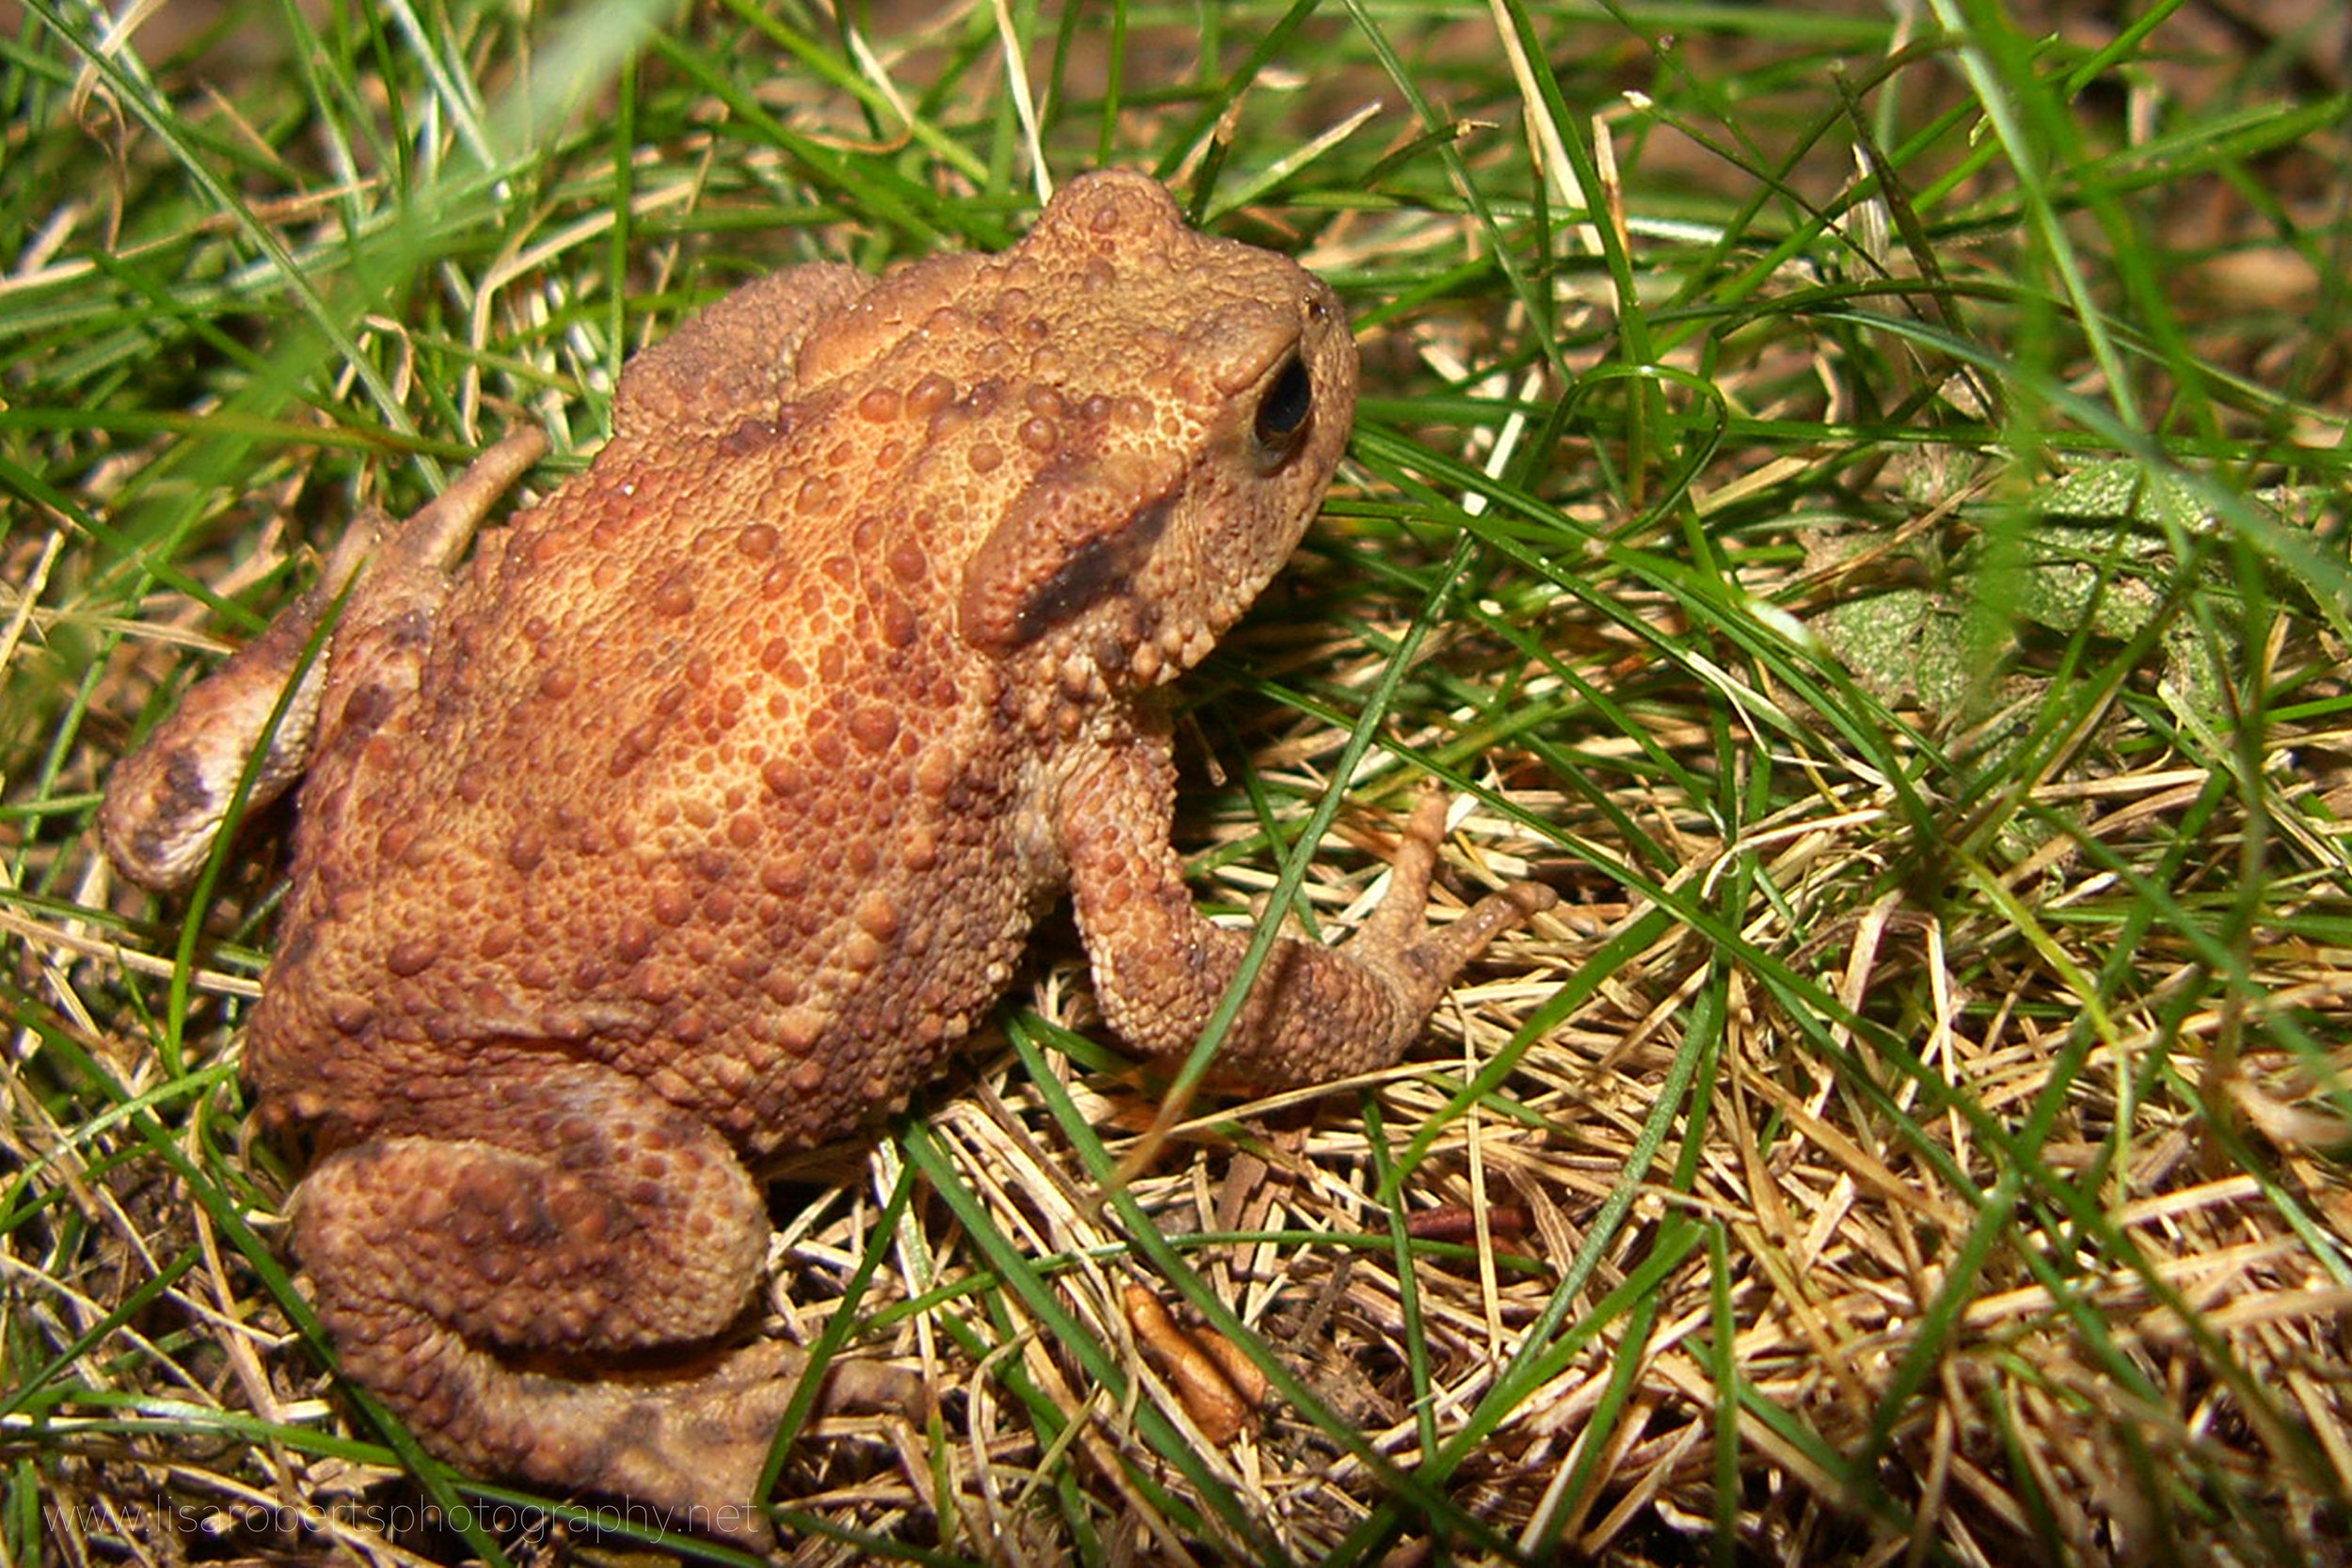 Common Toad profile